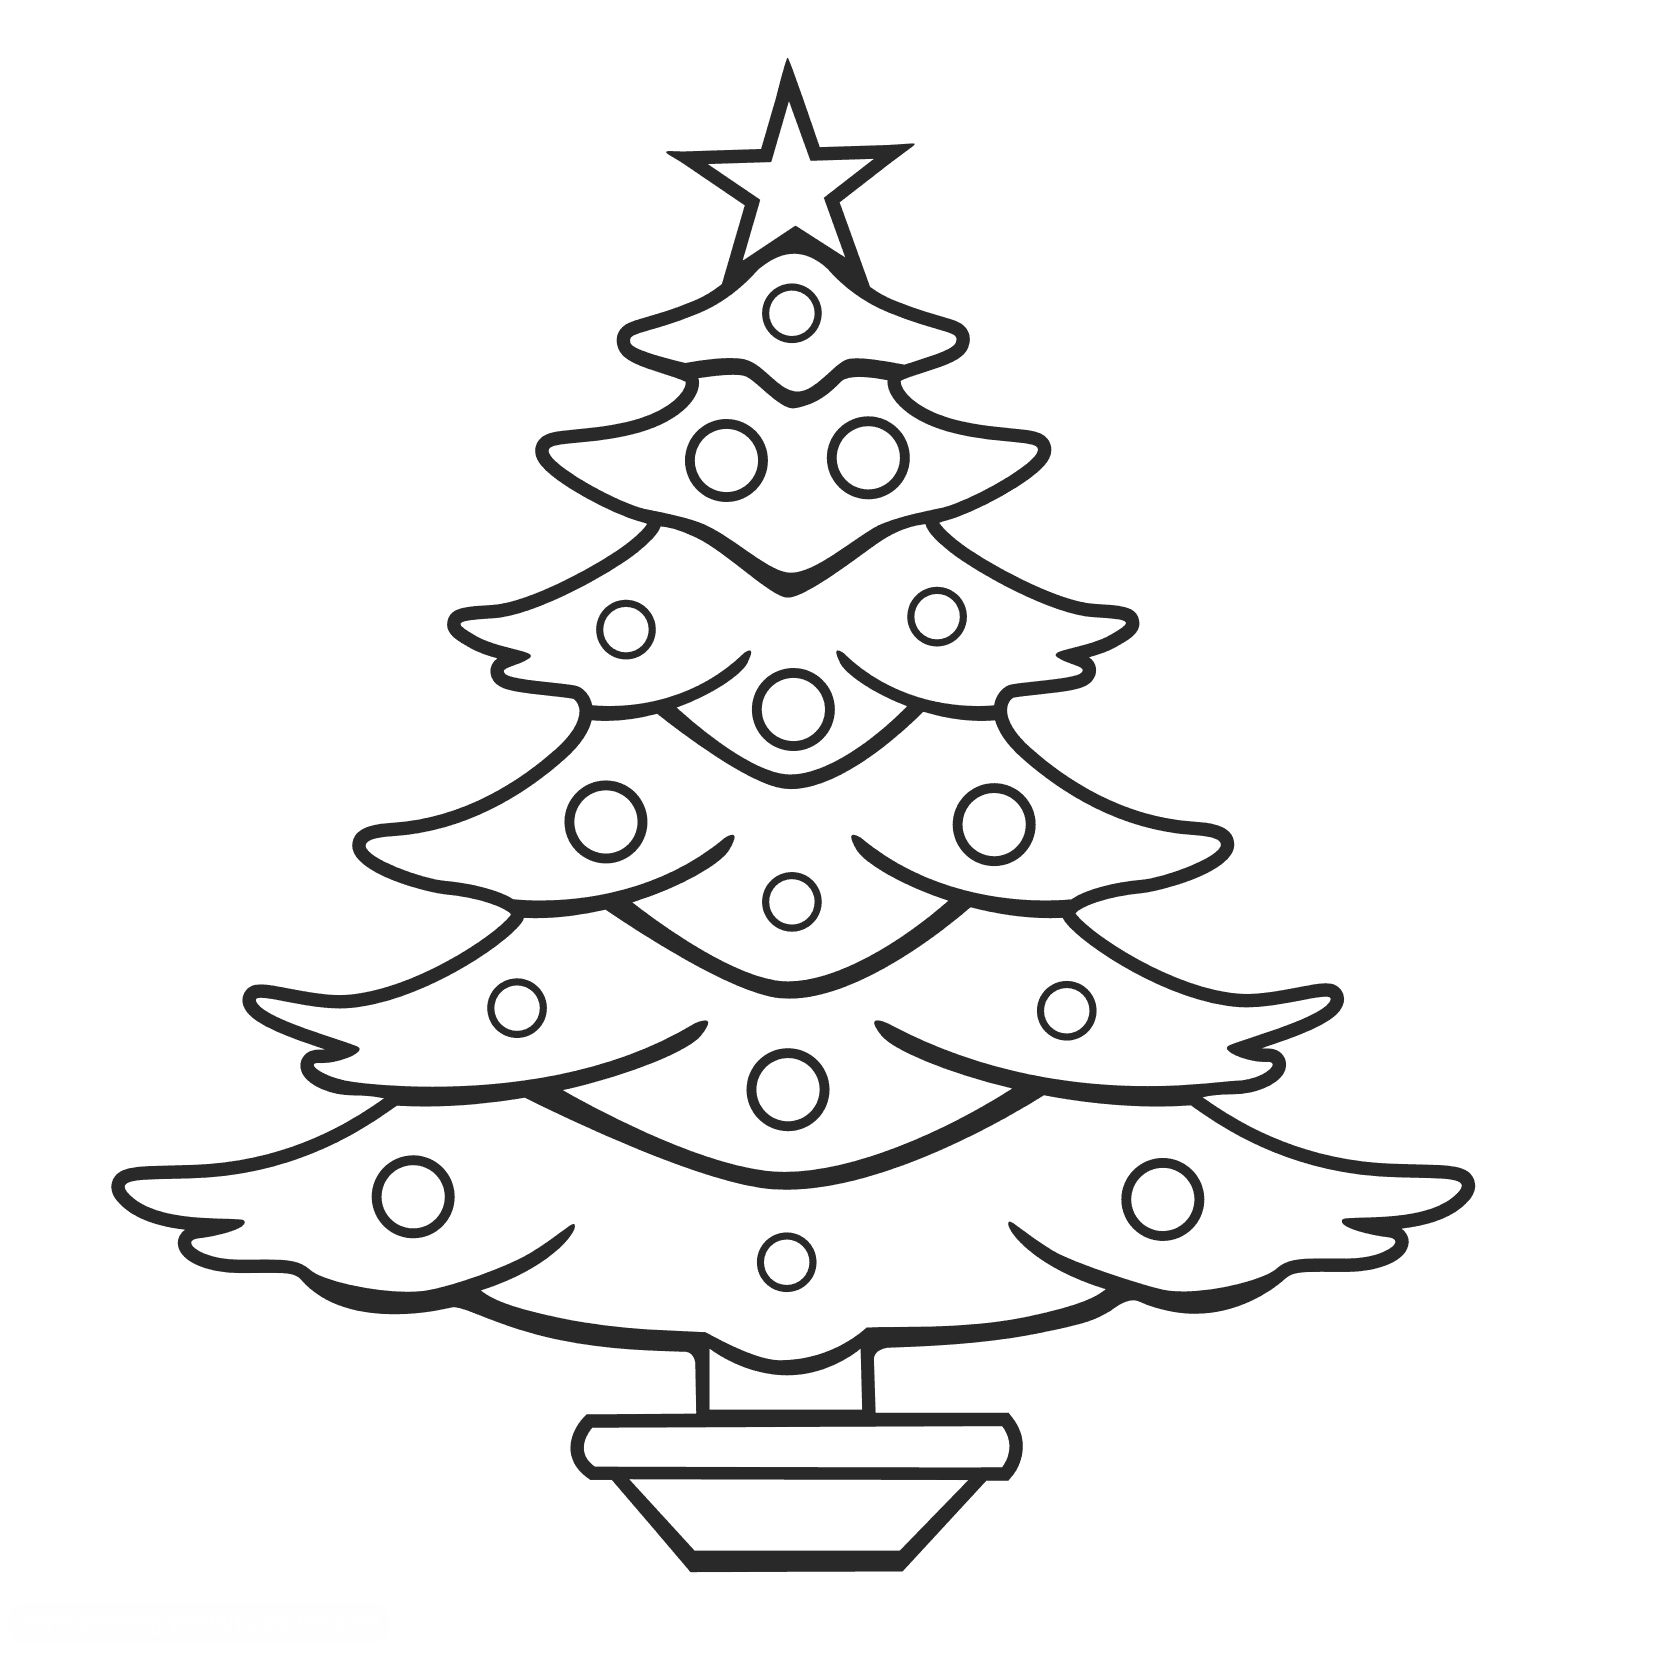 Christmas Tree Coloring Pages Getcoloringpages Gallery Free Gallery Of Apple Tree Coloring Page with Coloring Pages Apple orchard Download Download